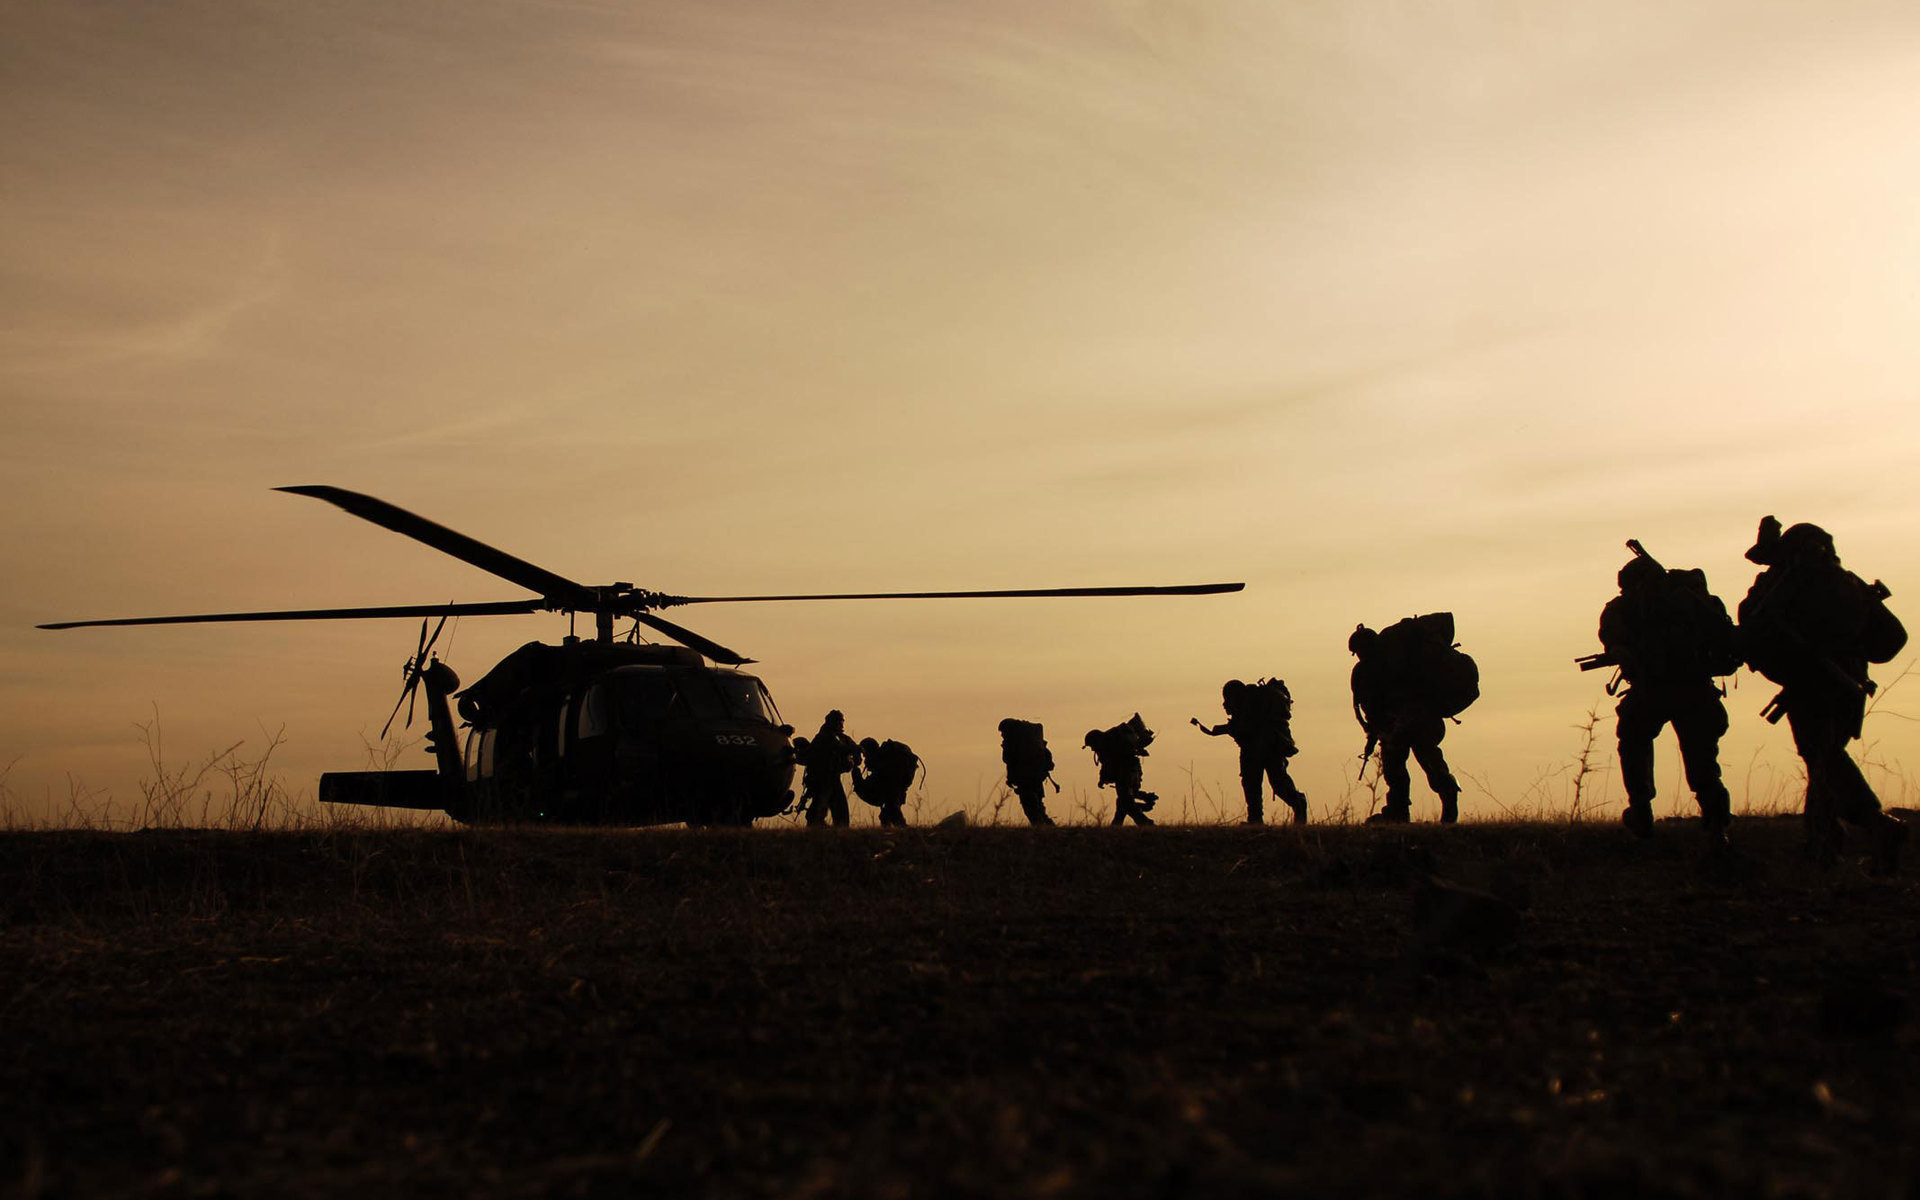 Us Army Wallpaper 9005 Hd Wallpapers in War n Army – Imagesci.com